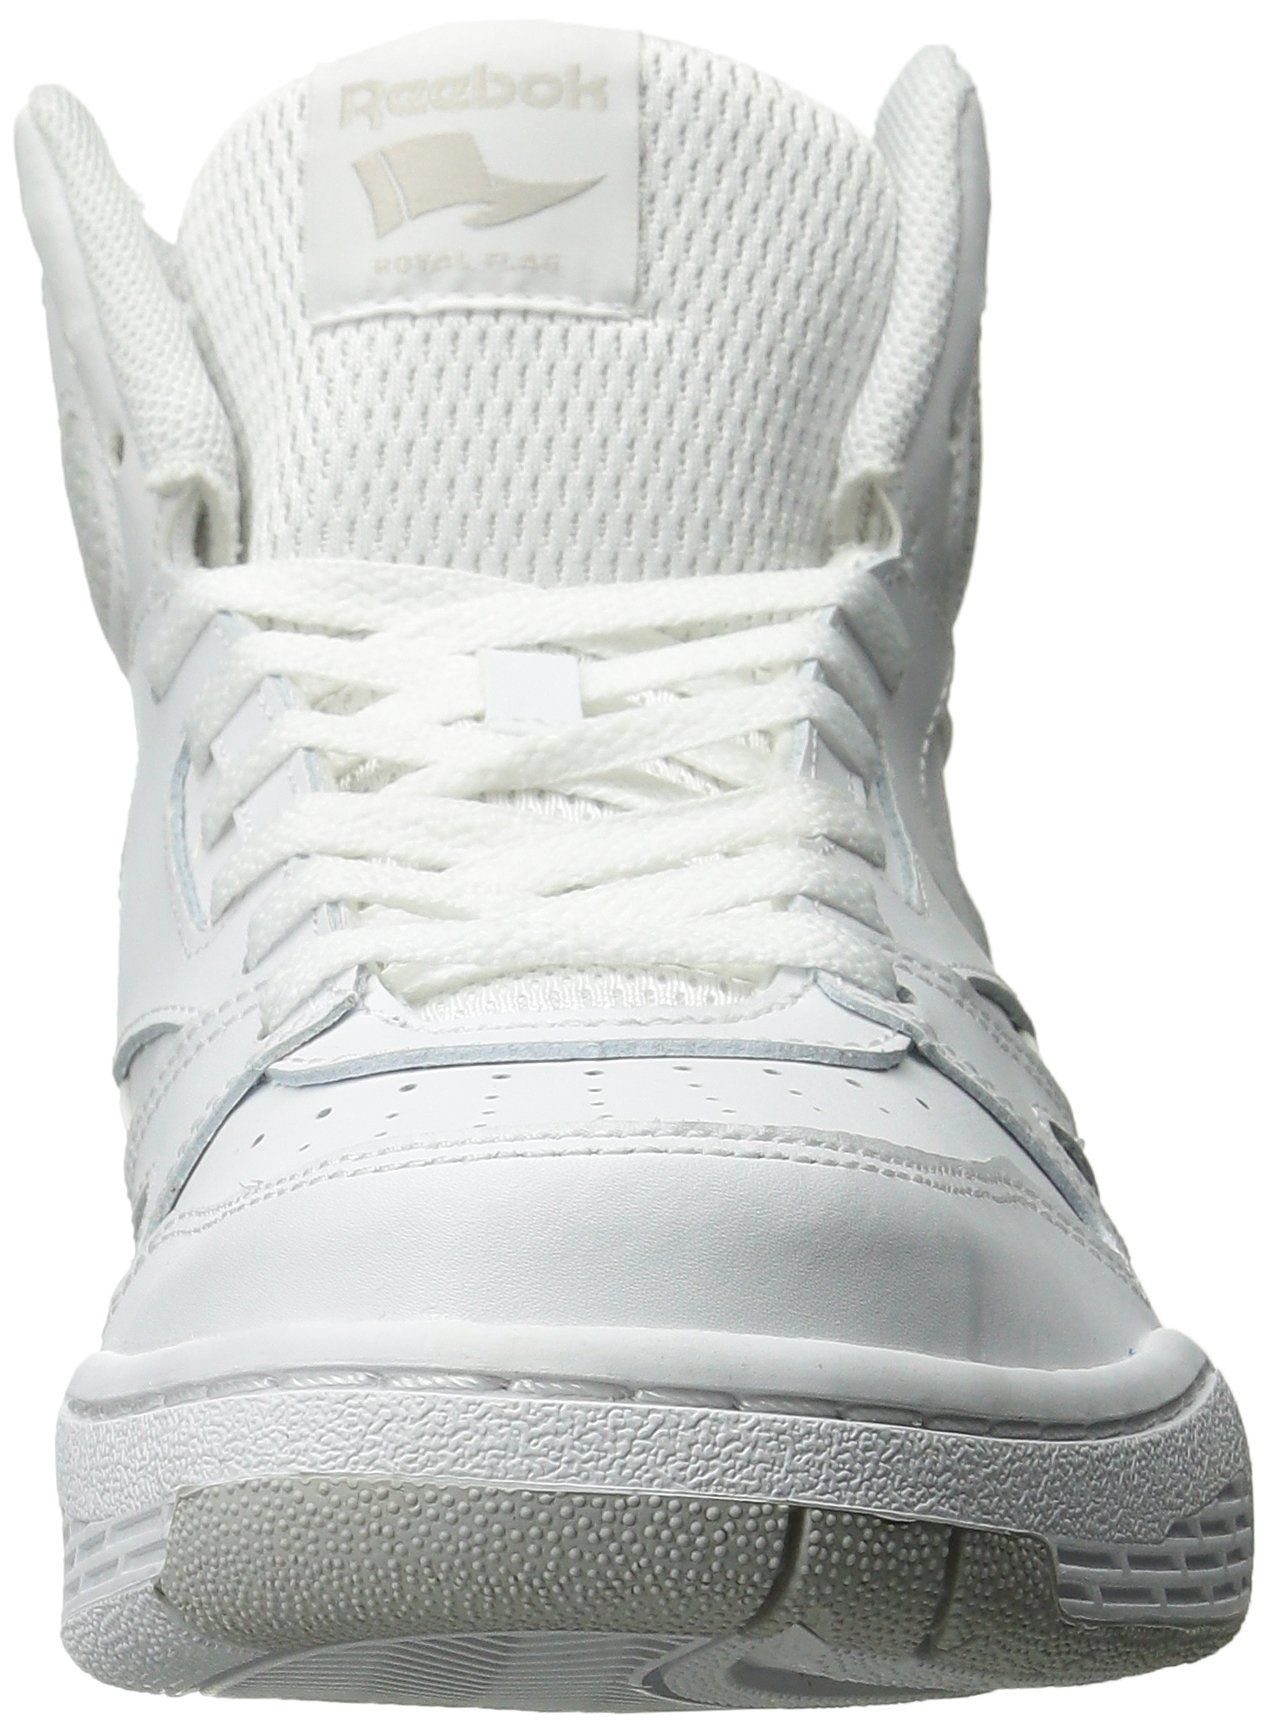 Reebok Mens Royal Bb4500 Hi Fashion Sneaker White Steel 10 M US    Click  image to review more details. (This is an affiliate link and I receive a  commission ... 49fad7d0b